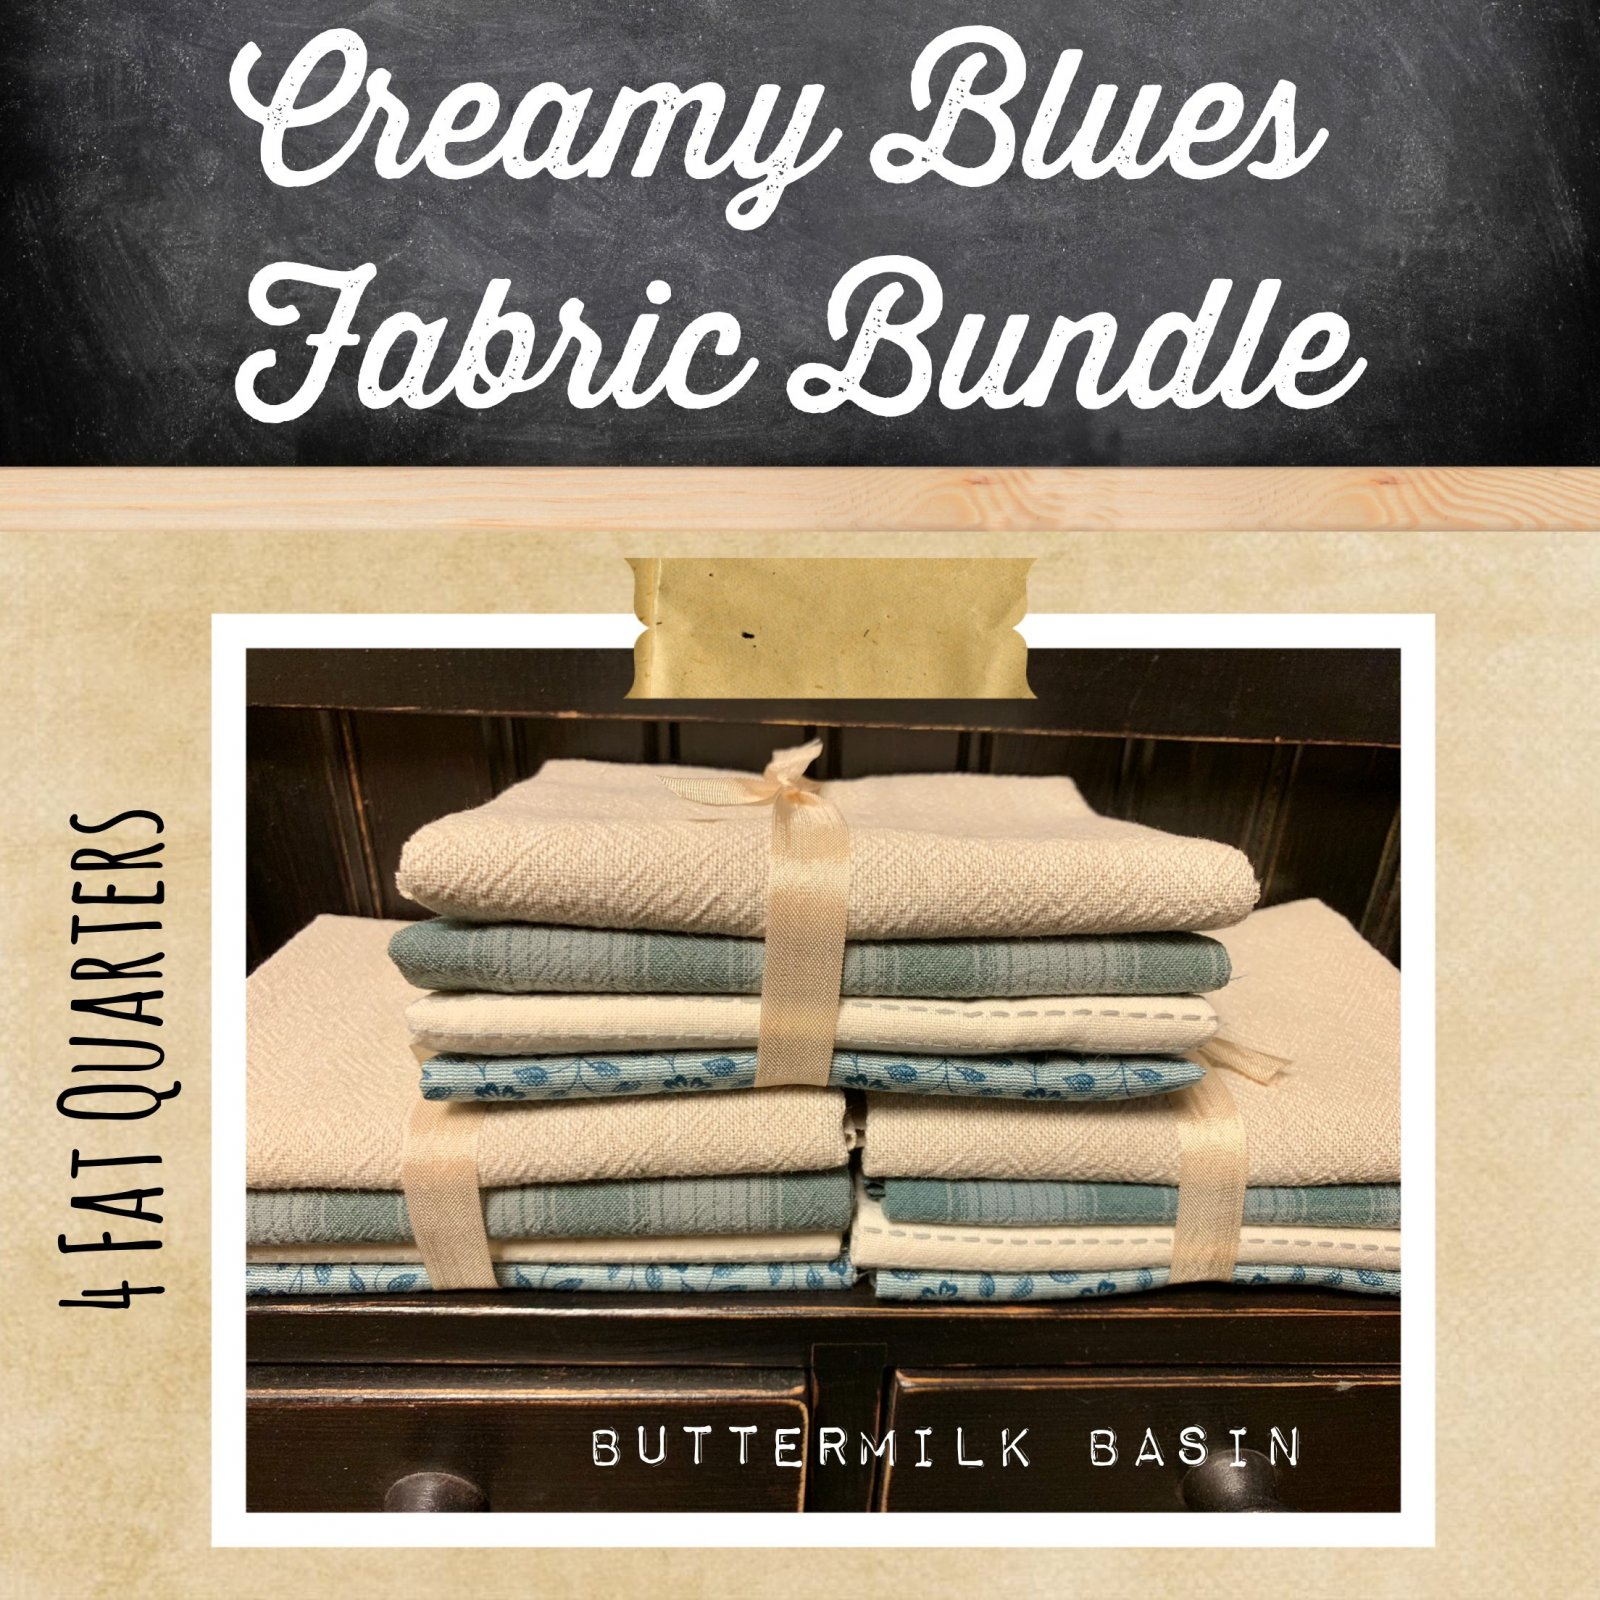 Creamy Blues Fabric Bundle